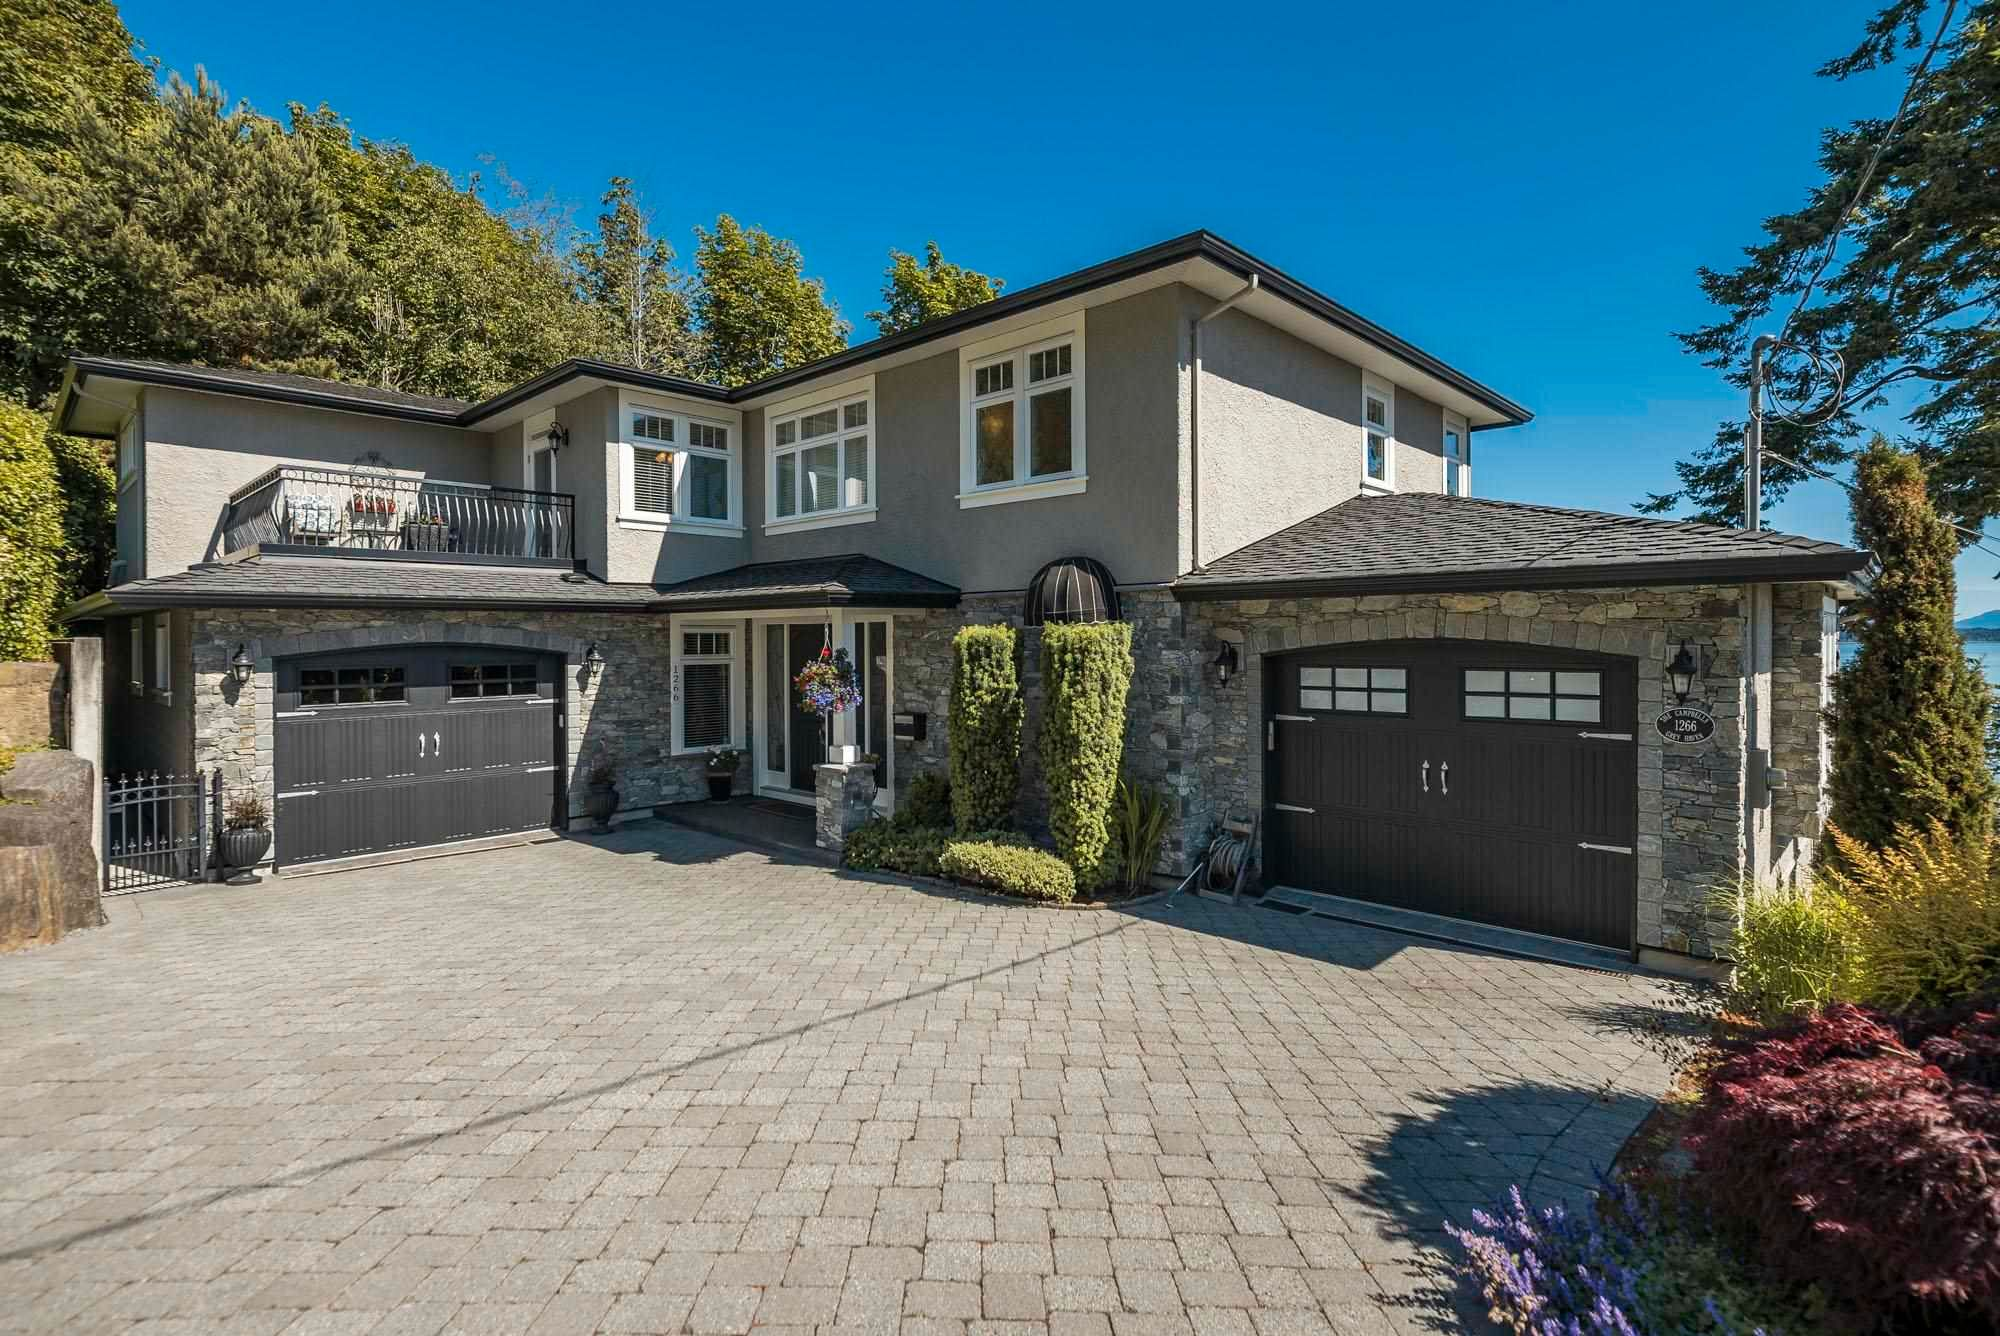 Main Photo: 1266 EVERALL Street: White Rock House for sale (South Surrey White Rock)  : MLS®# R2594040